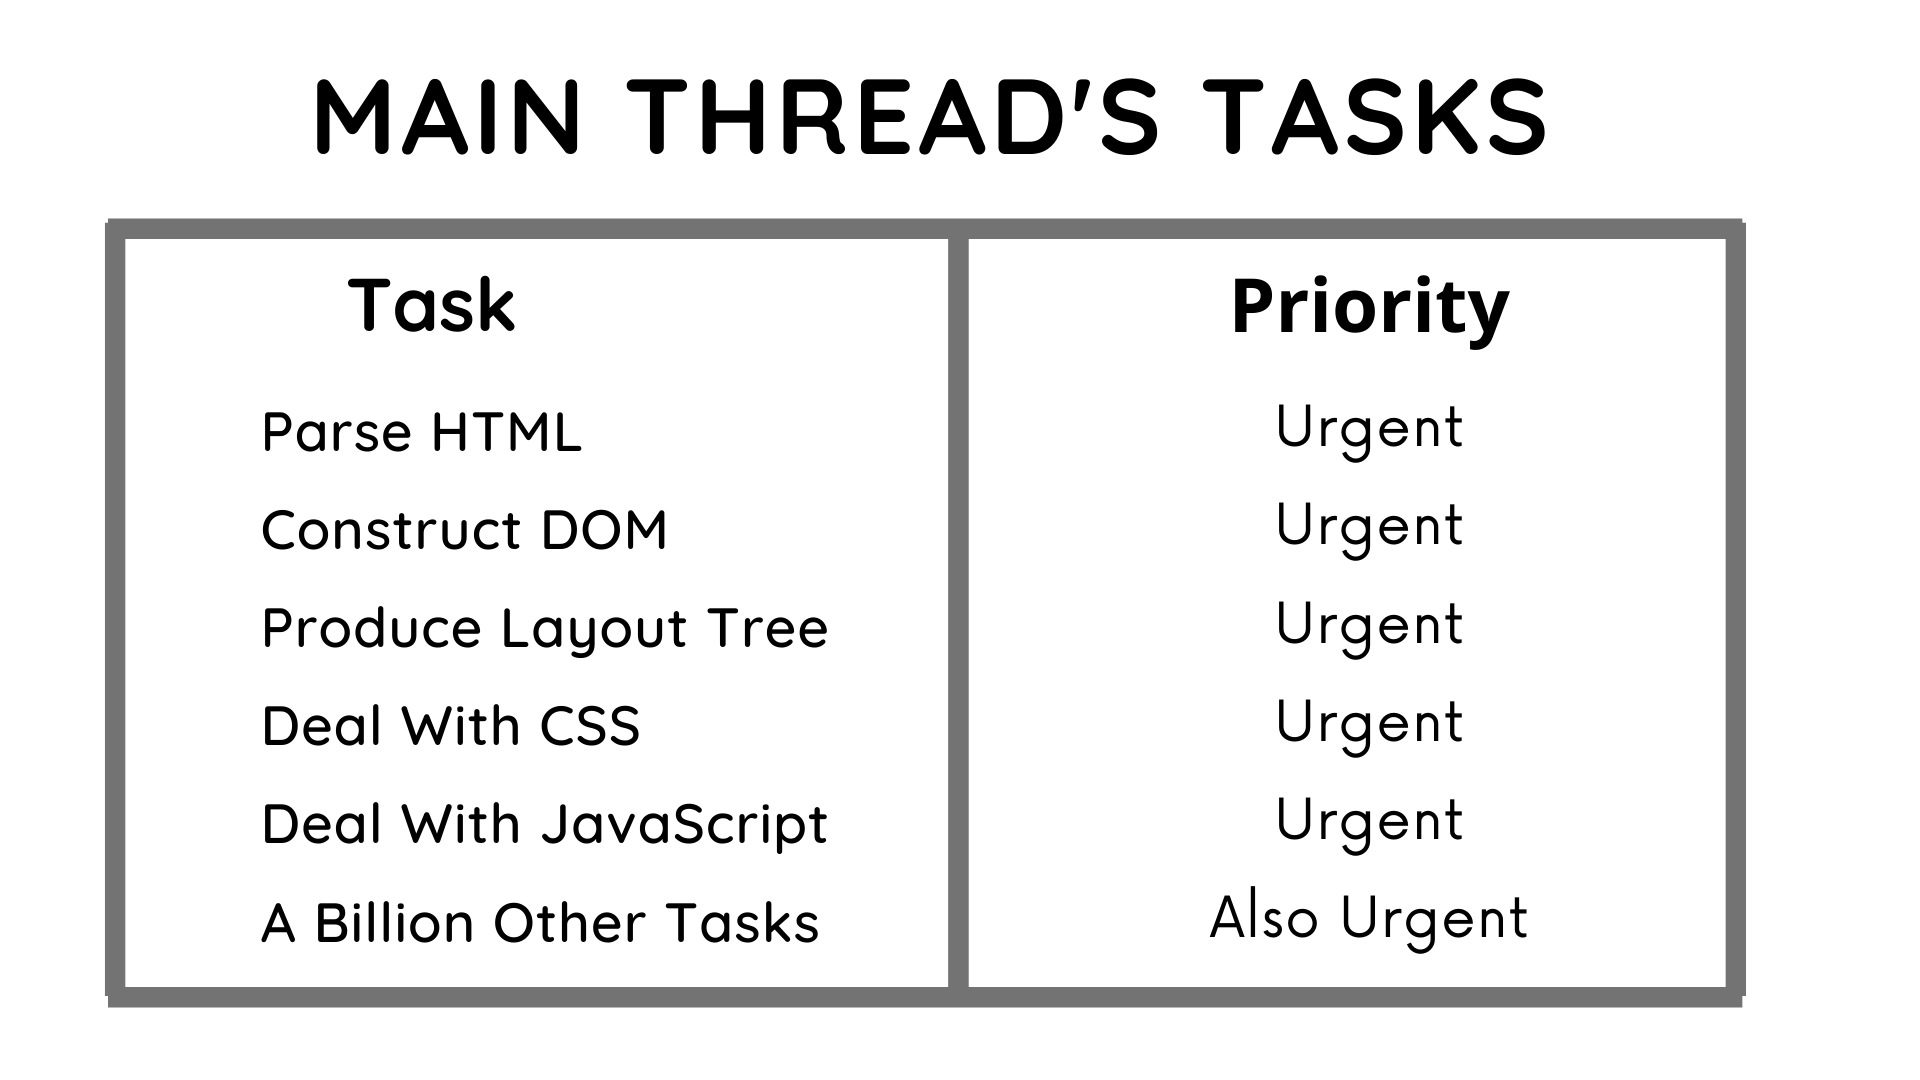 Main Thread's Tasks